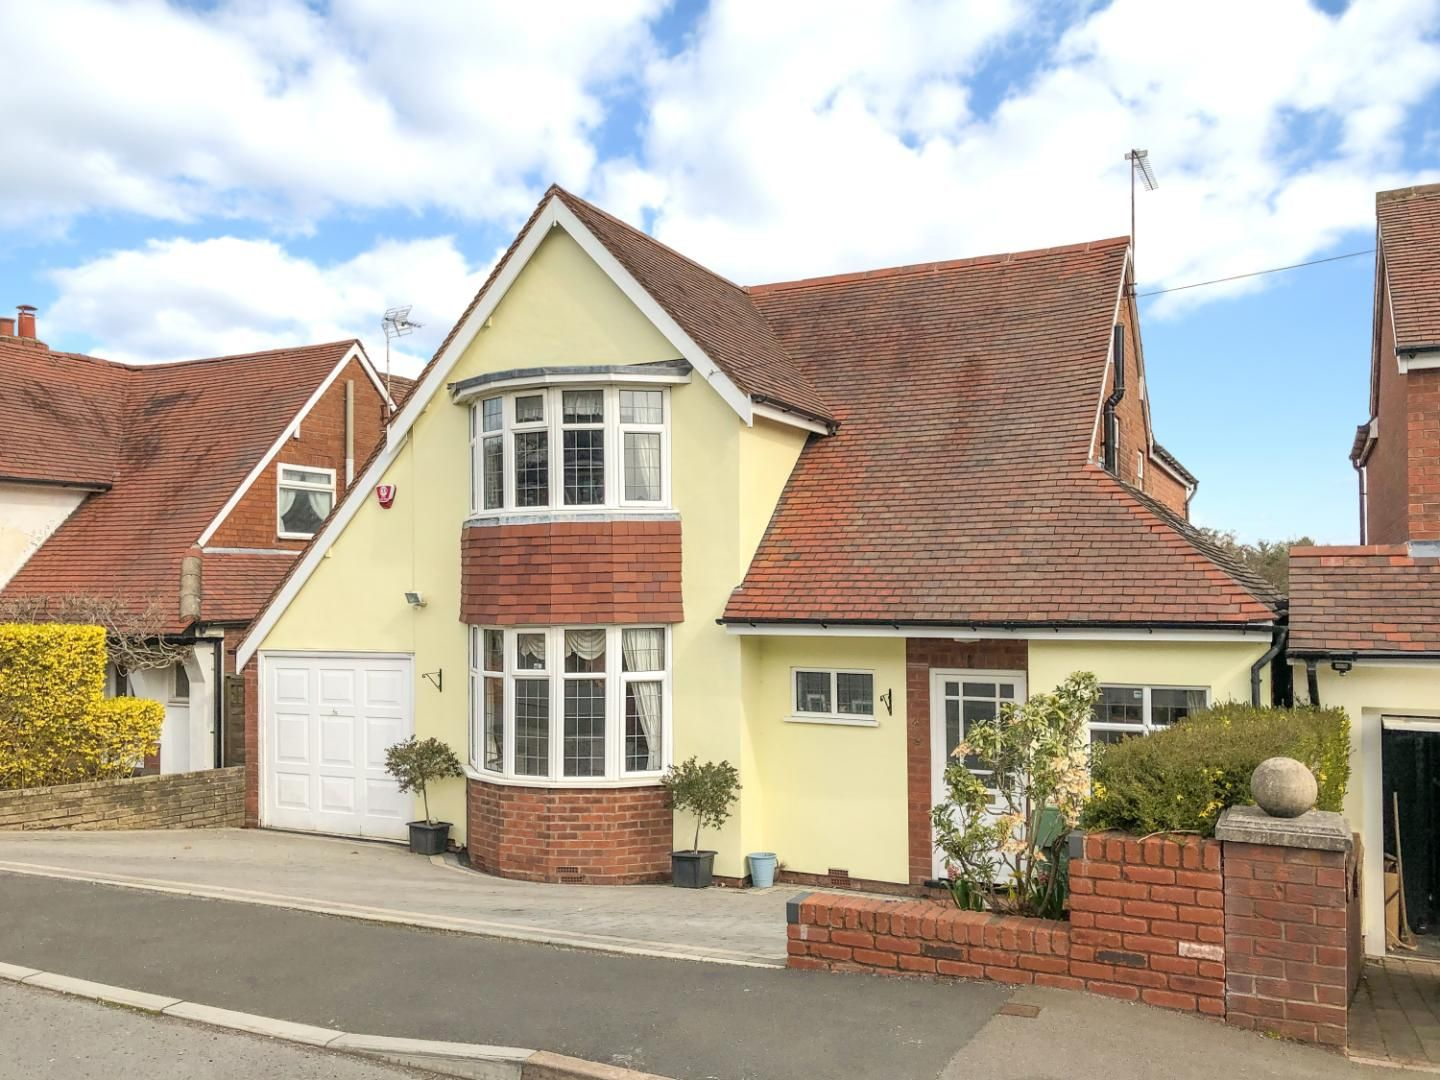 3 bed detached for sale in Reservoir Road, Cofton Hackett  - Property Image 1